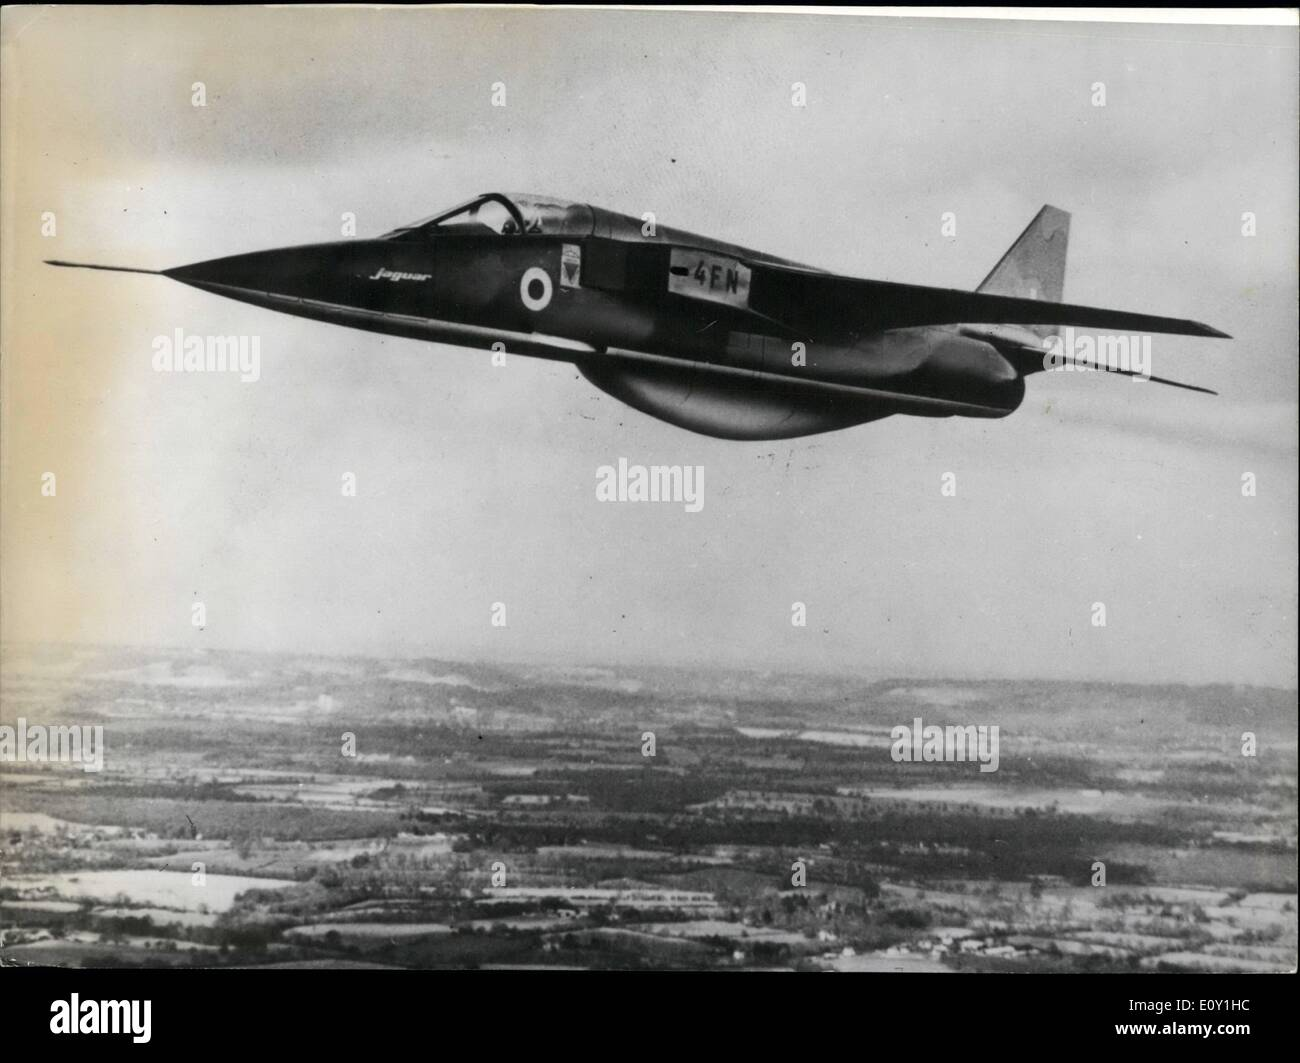 Mar. 03, 1968 - First Prototype of ''Jaguar (Reconnaissance version) to be shortly completed; Photo Shows An artist's Impression of t he new ''Jaguar'' (Reconnaissance version) now being completed at sud aviation works. - Stock Image